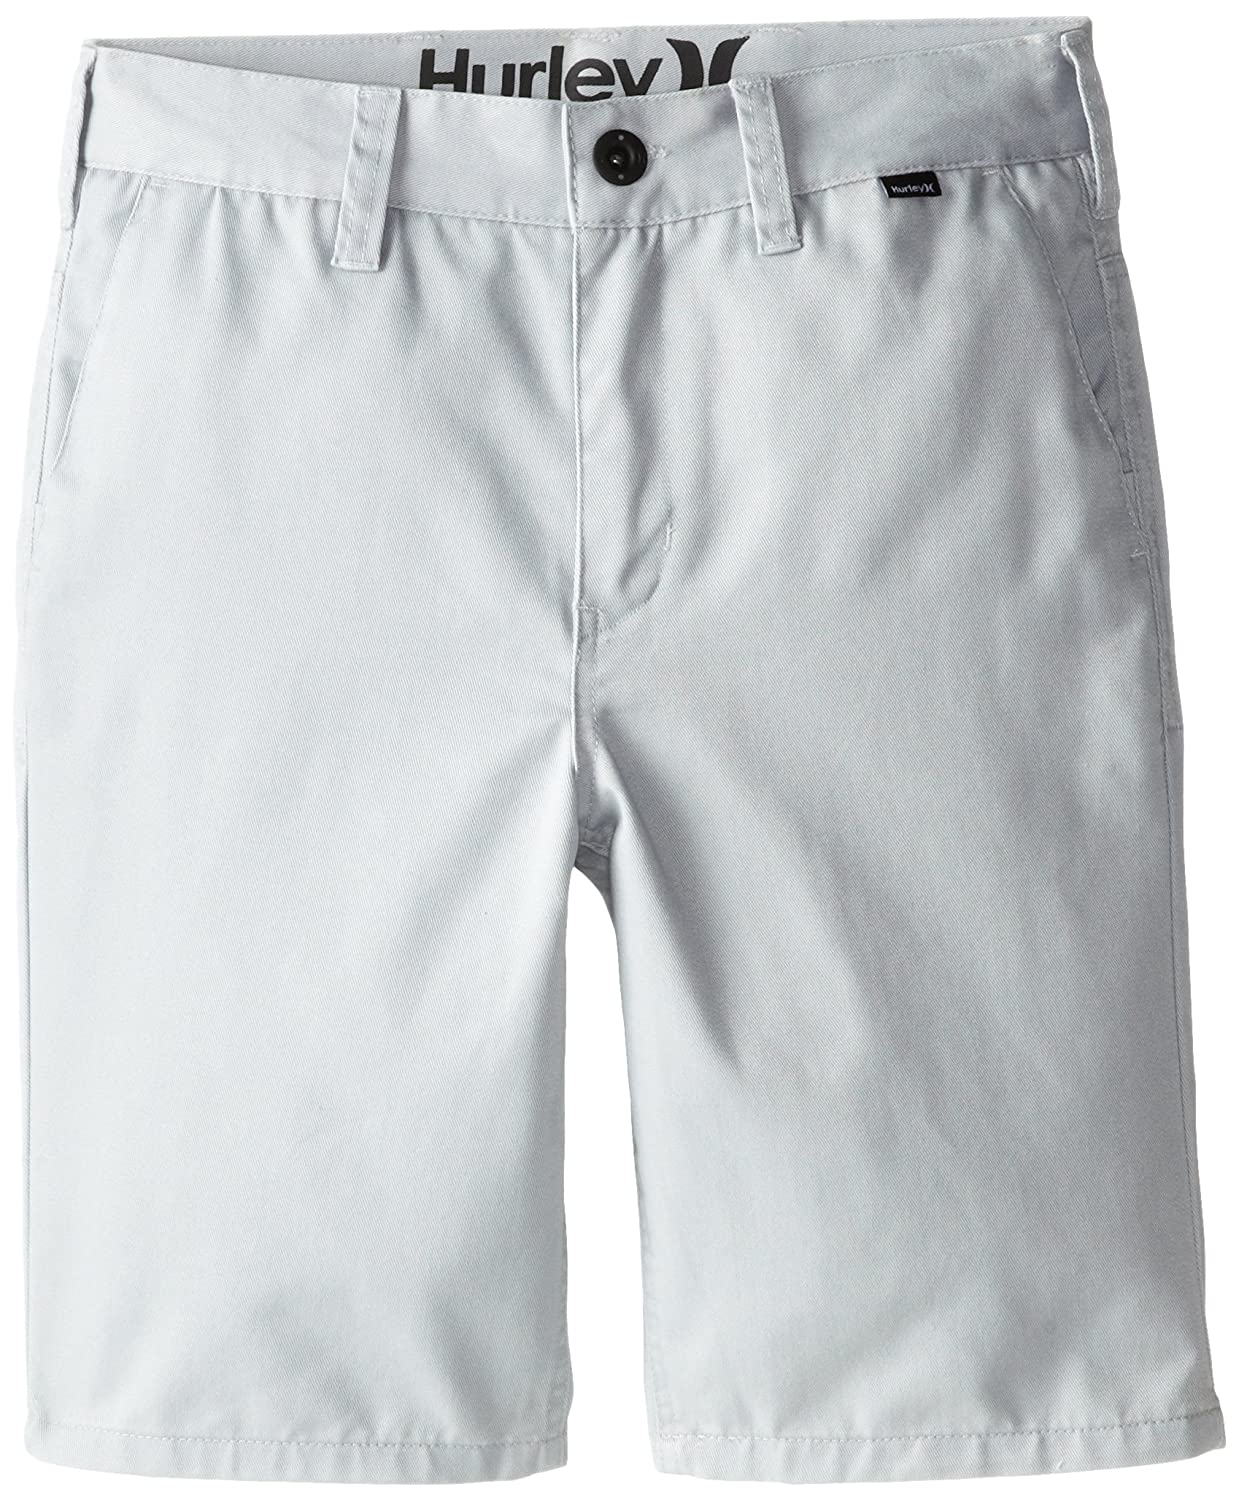 Hurley Big Boys' One and Only Walkshort with Welt Pockets Hurley Boys 981040-174